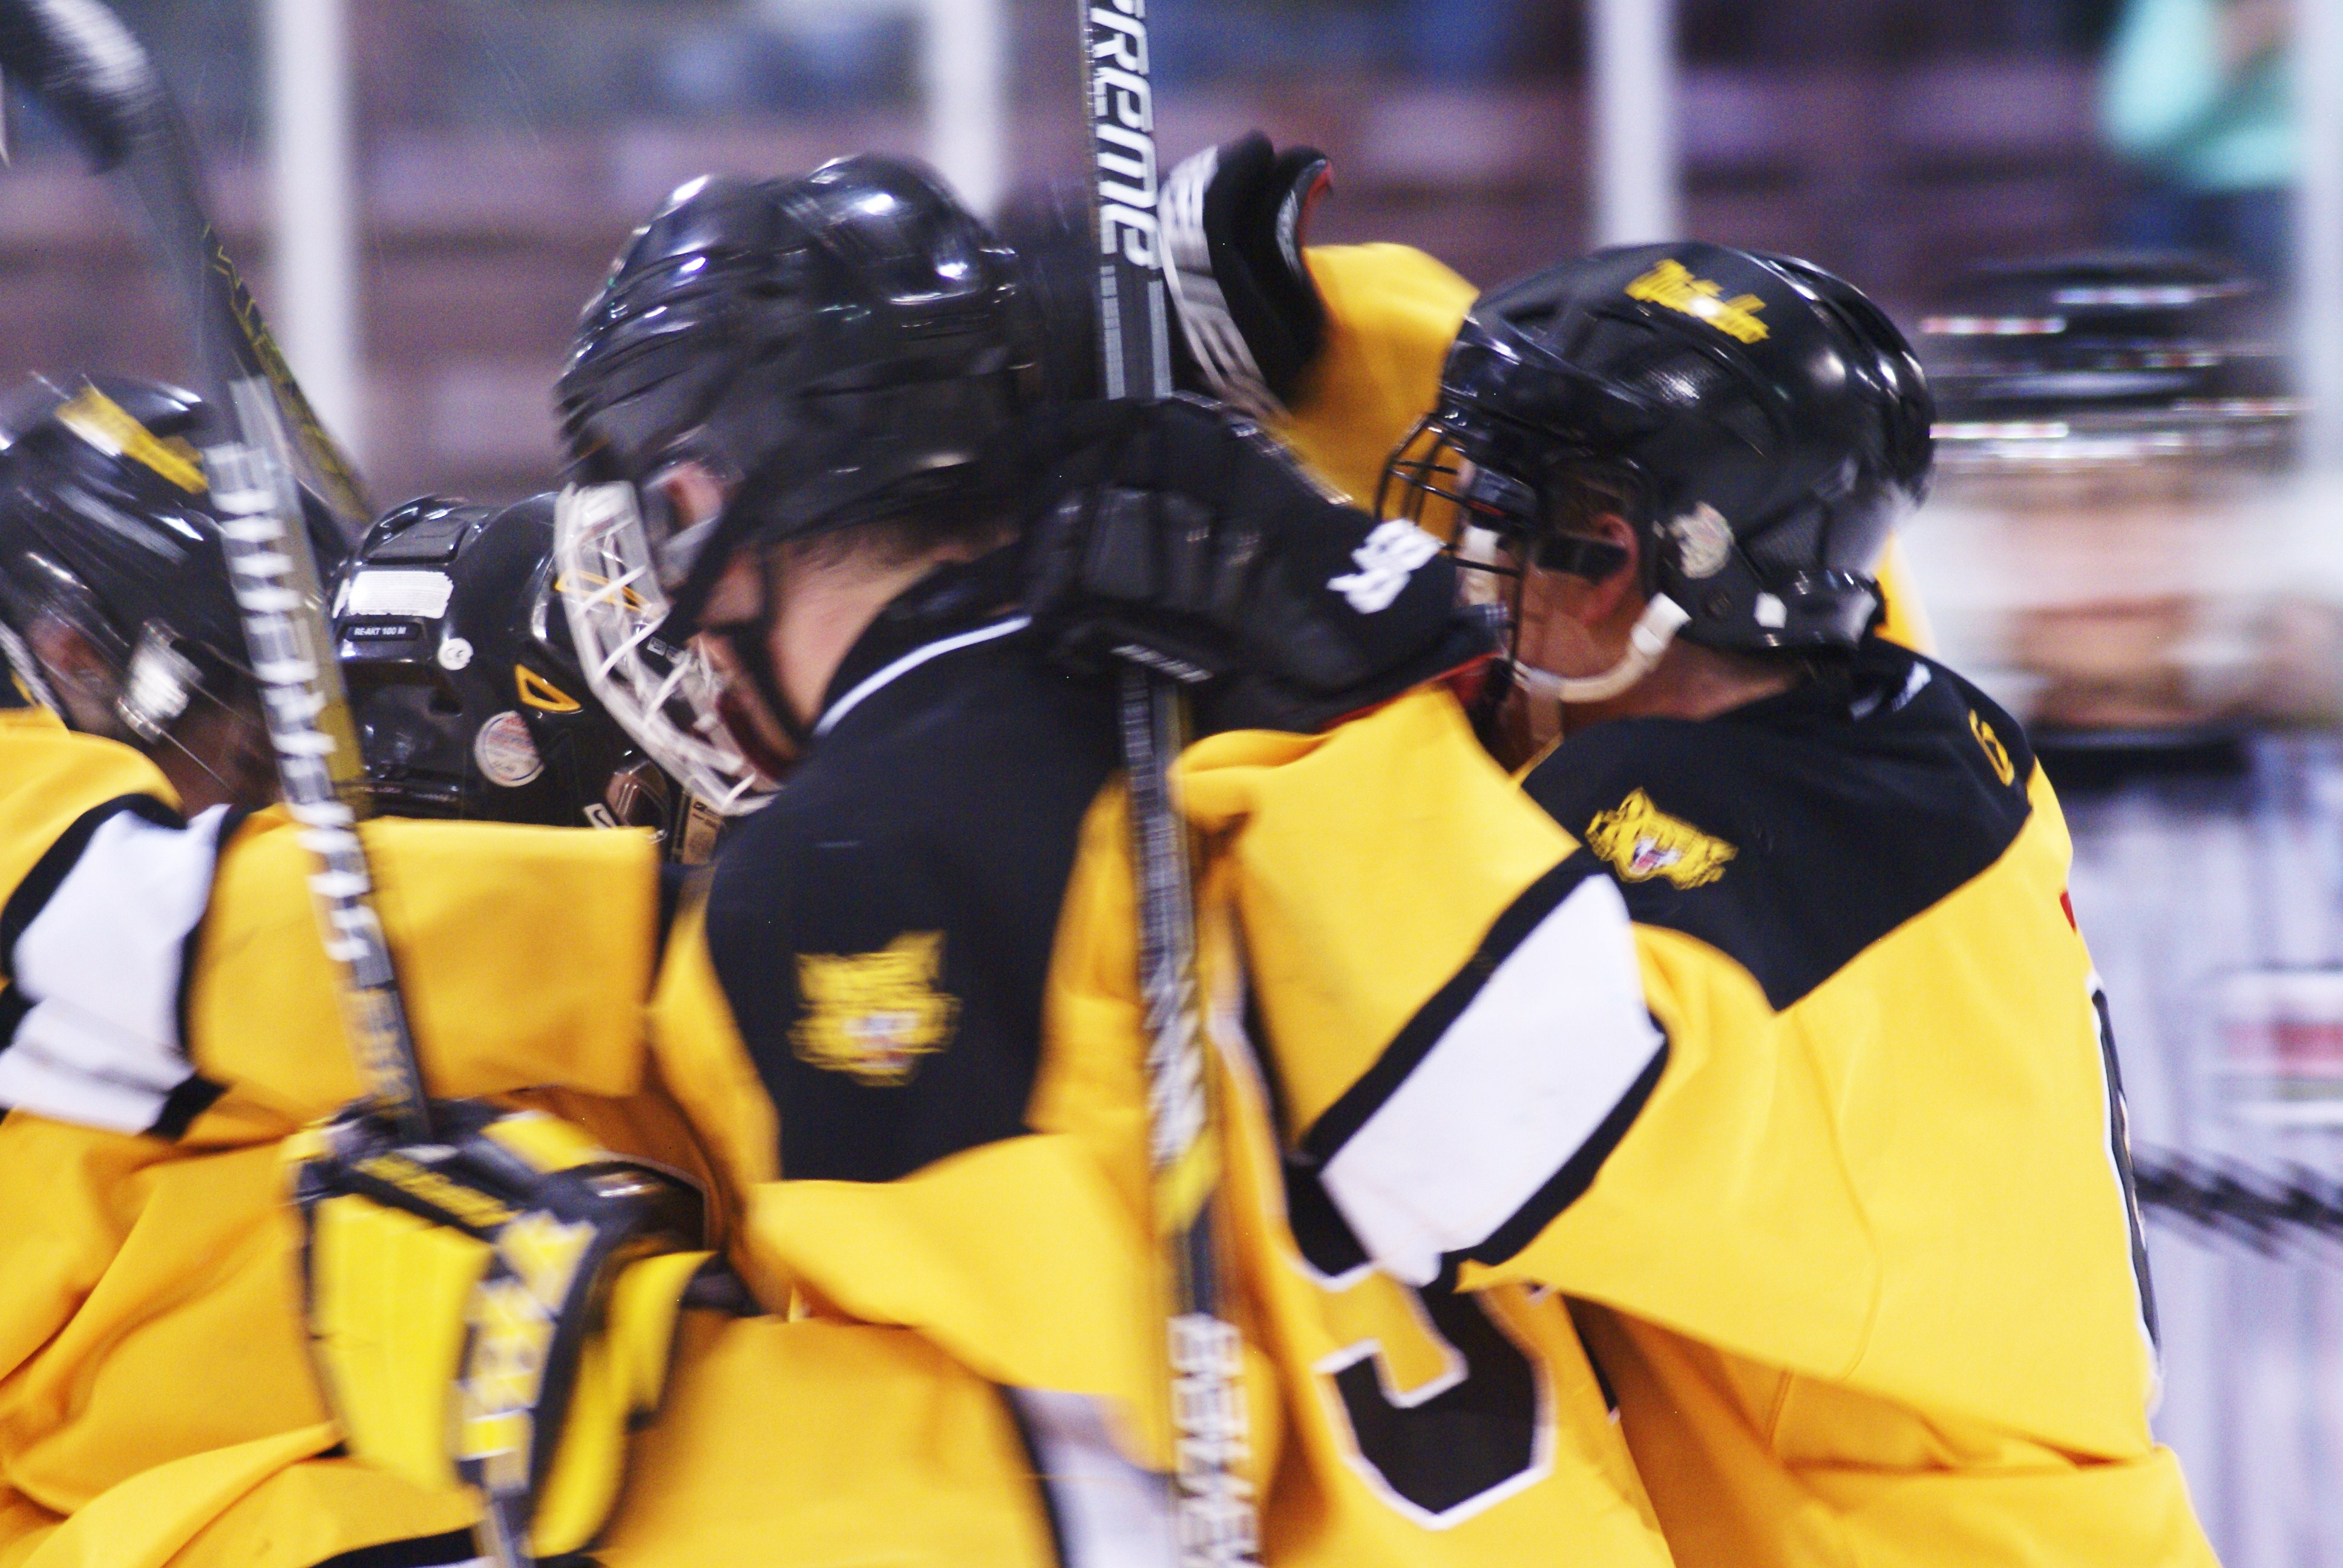 Waterloo wolves aaa midget hockey